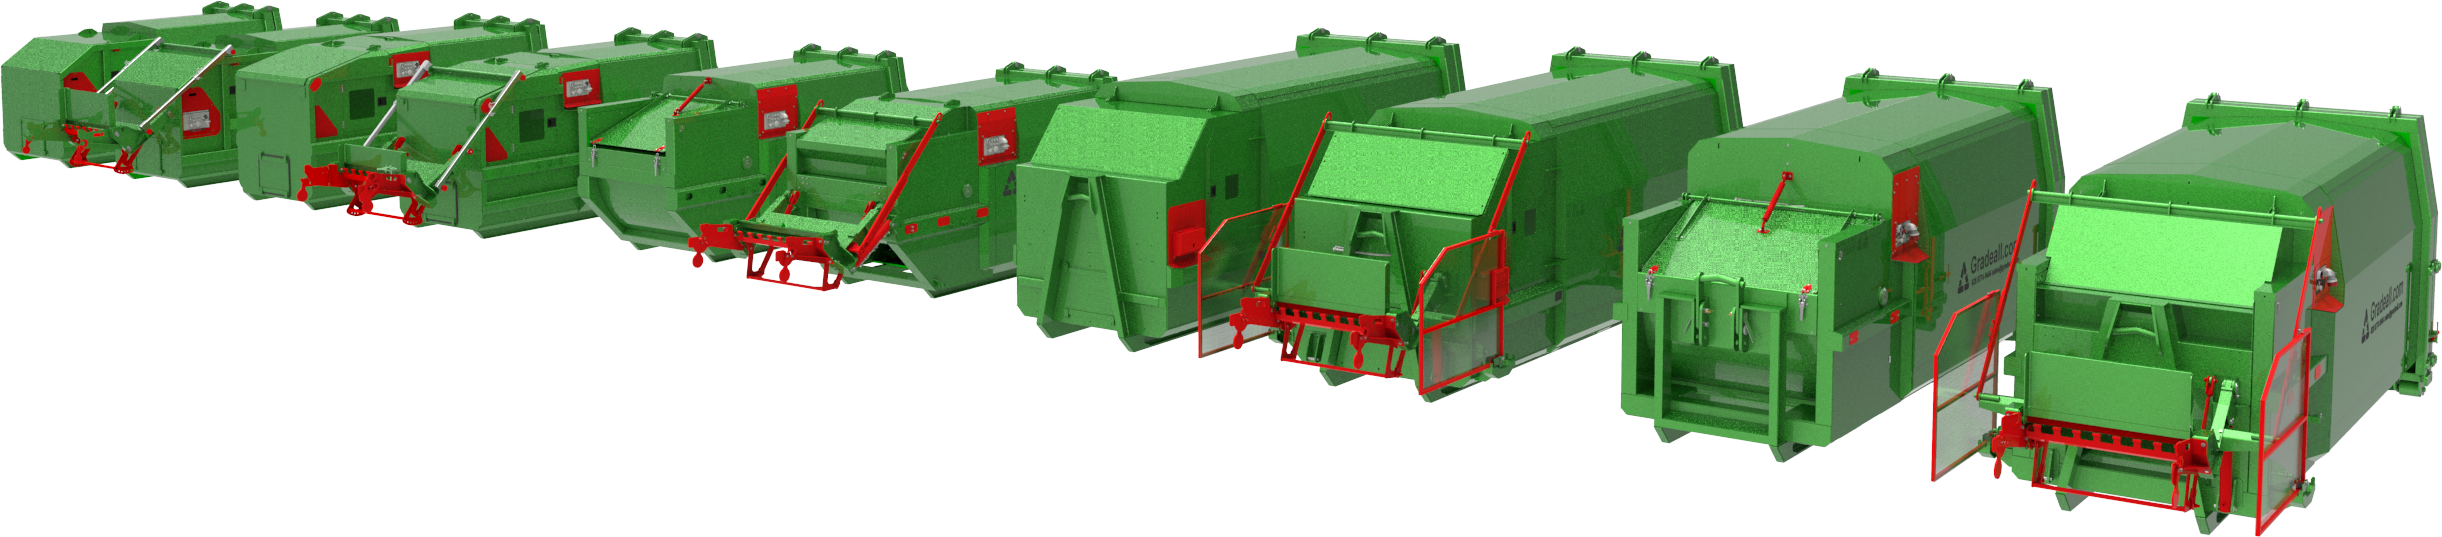 gradeall portable waste compactors for general and wet waste types